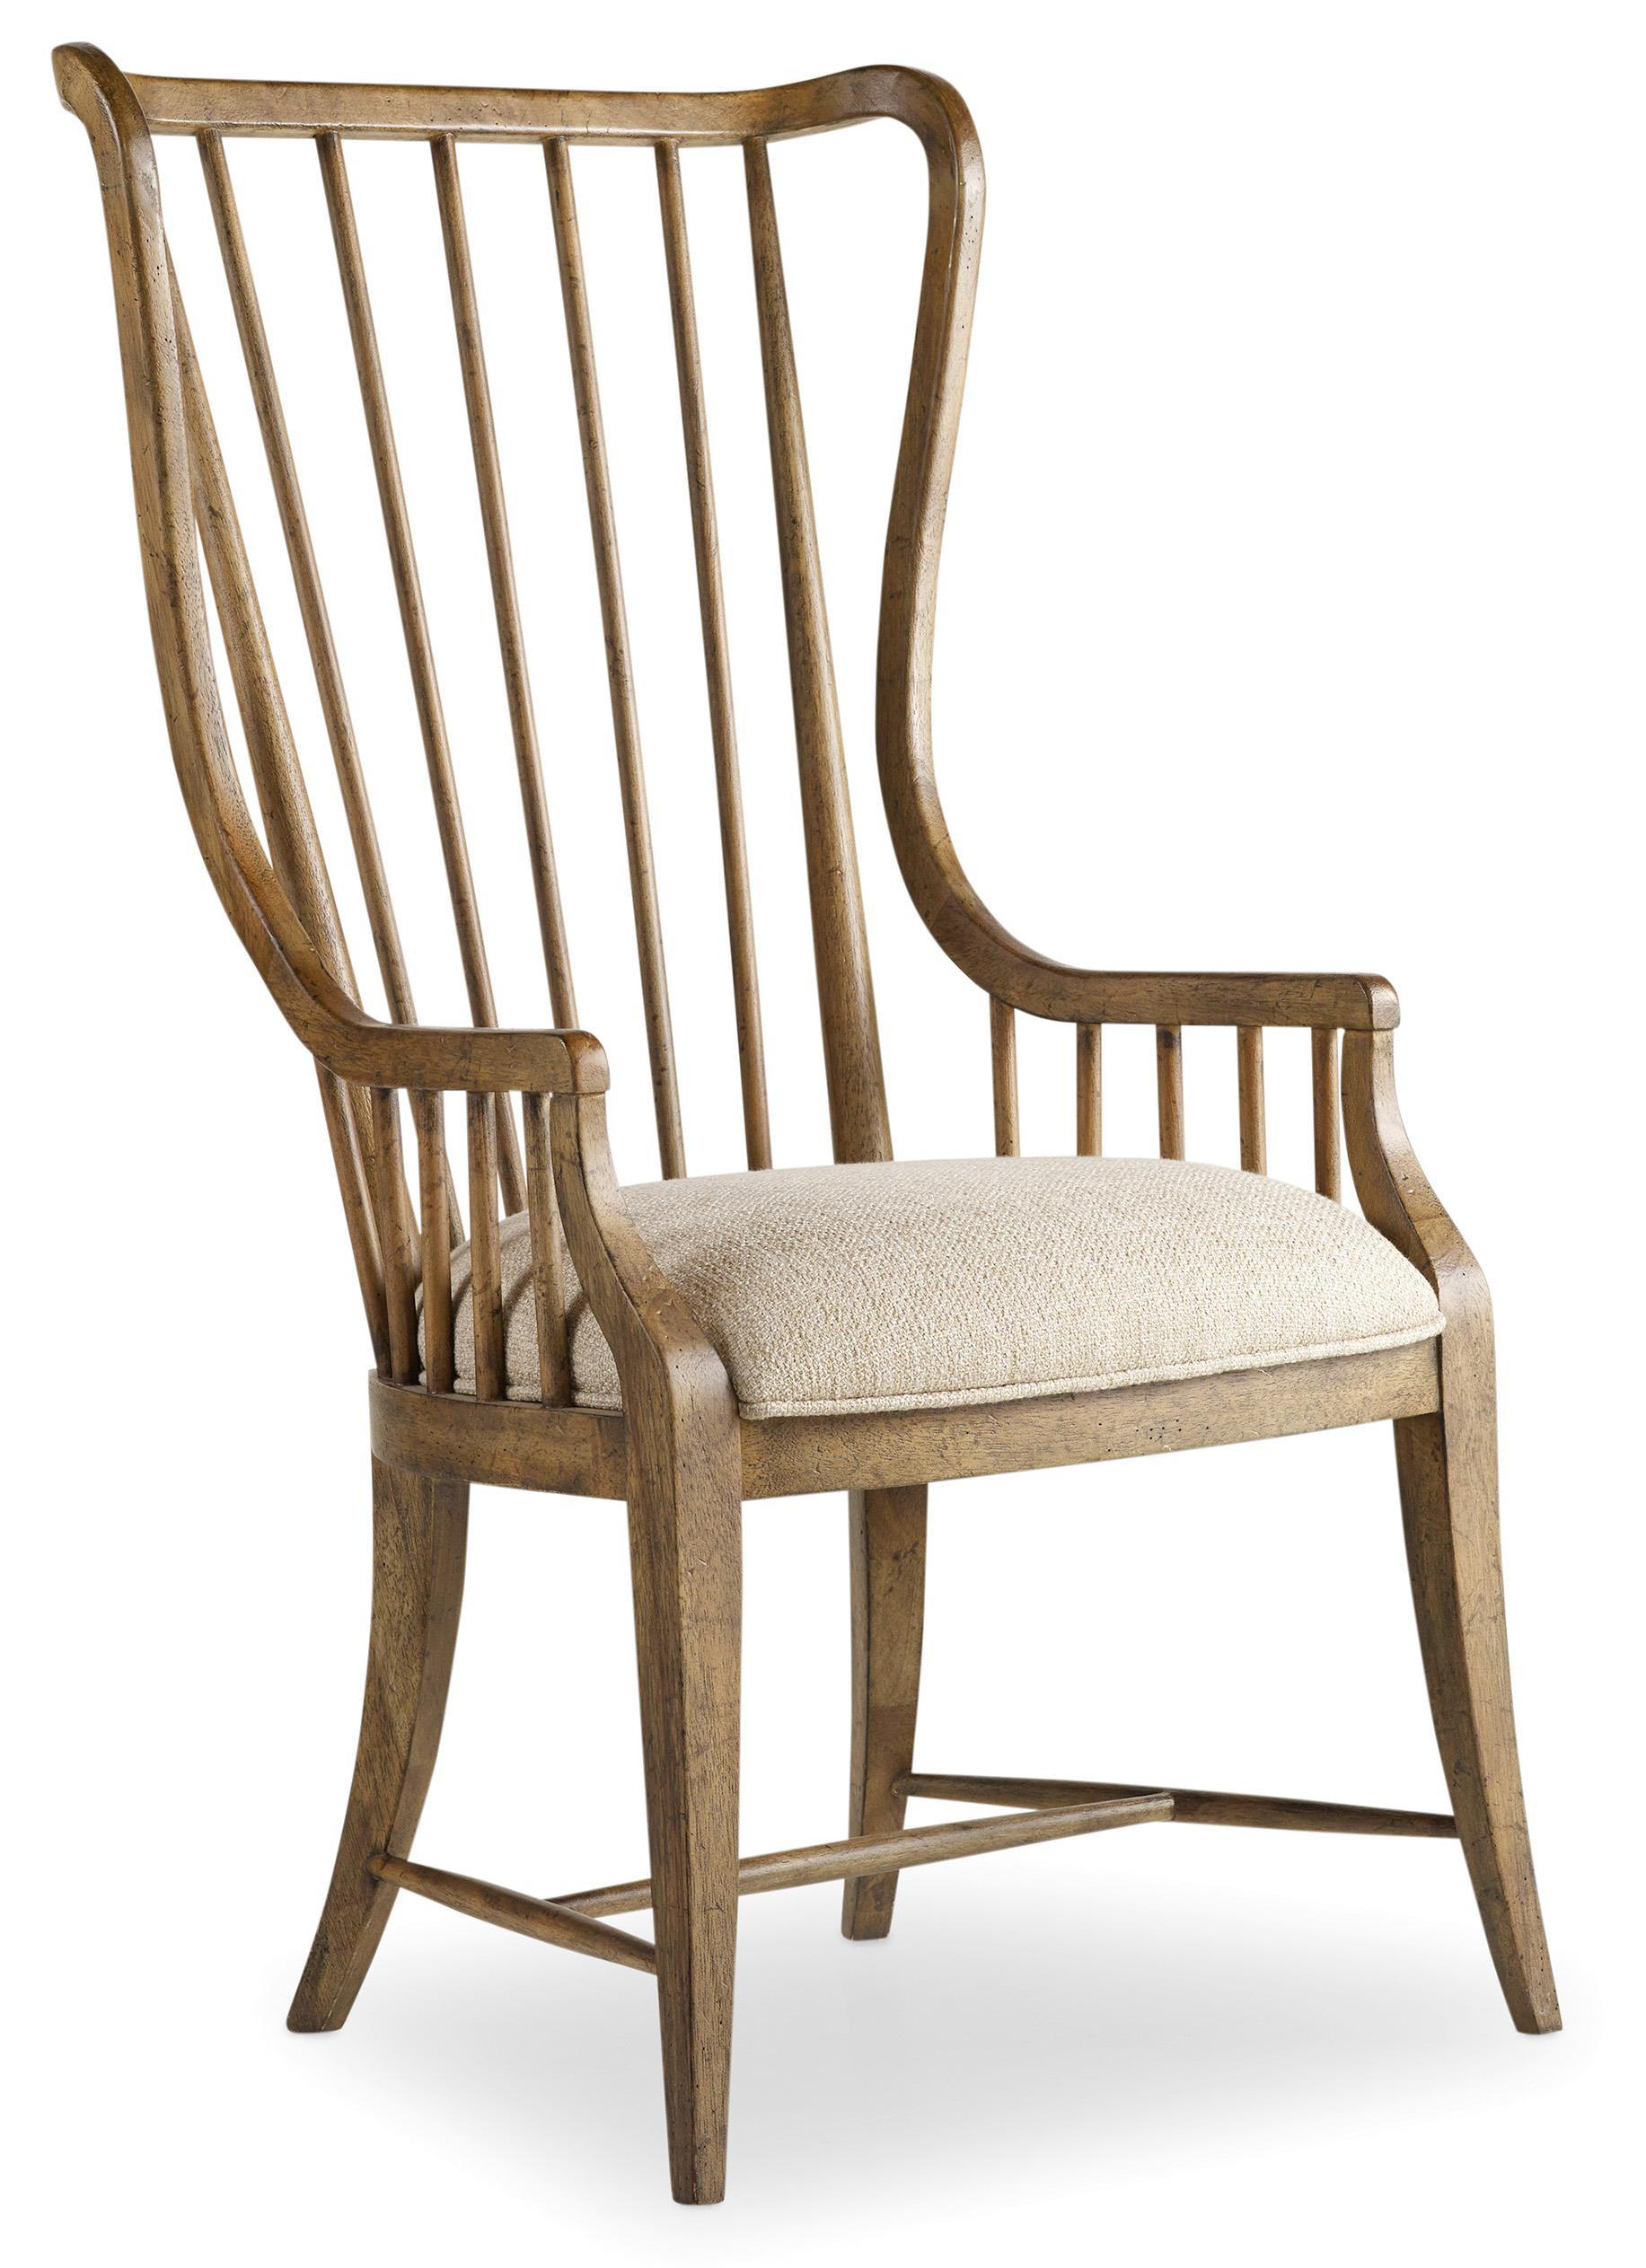 Sanctuary Tall Spindle Arm Chair by Hooker Furniture at Miller Waldrop Furniture and Decor